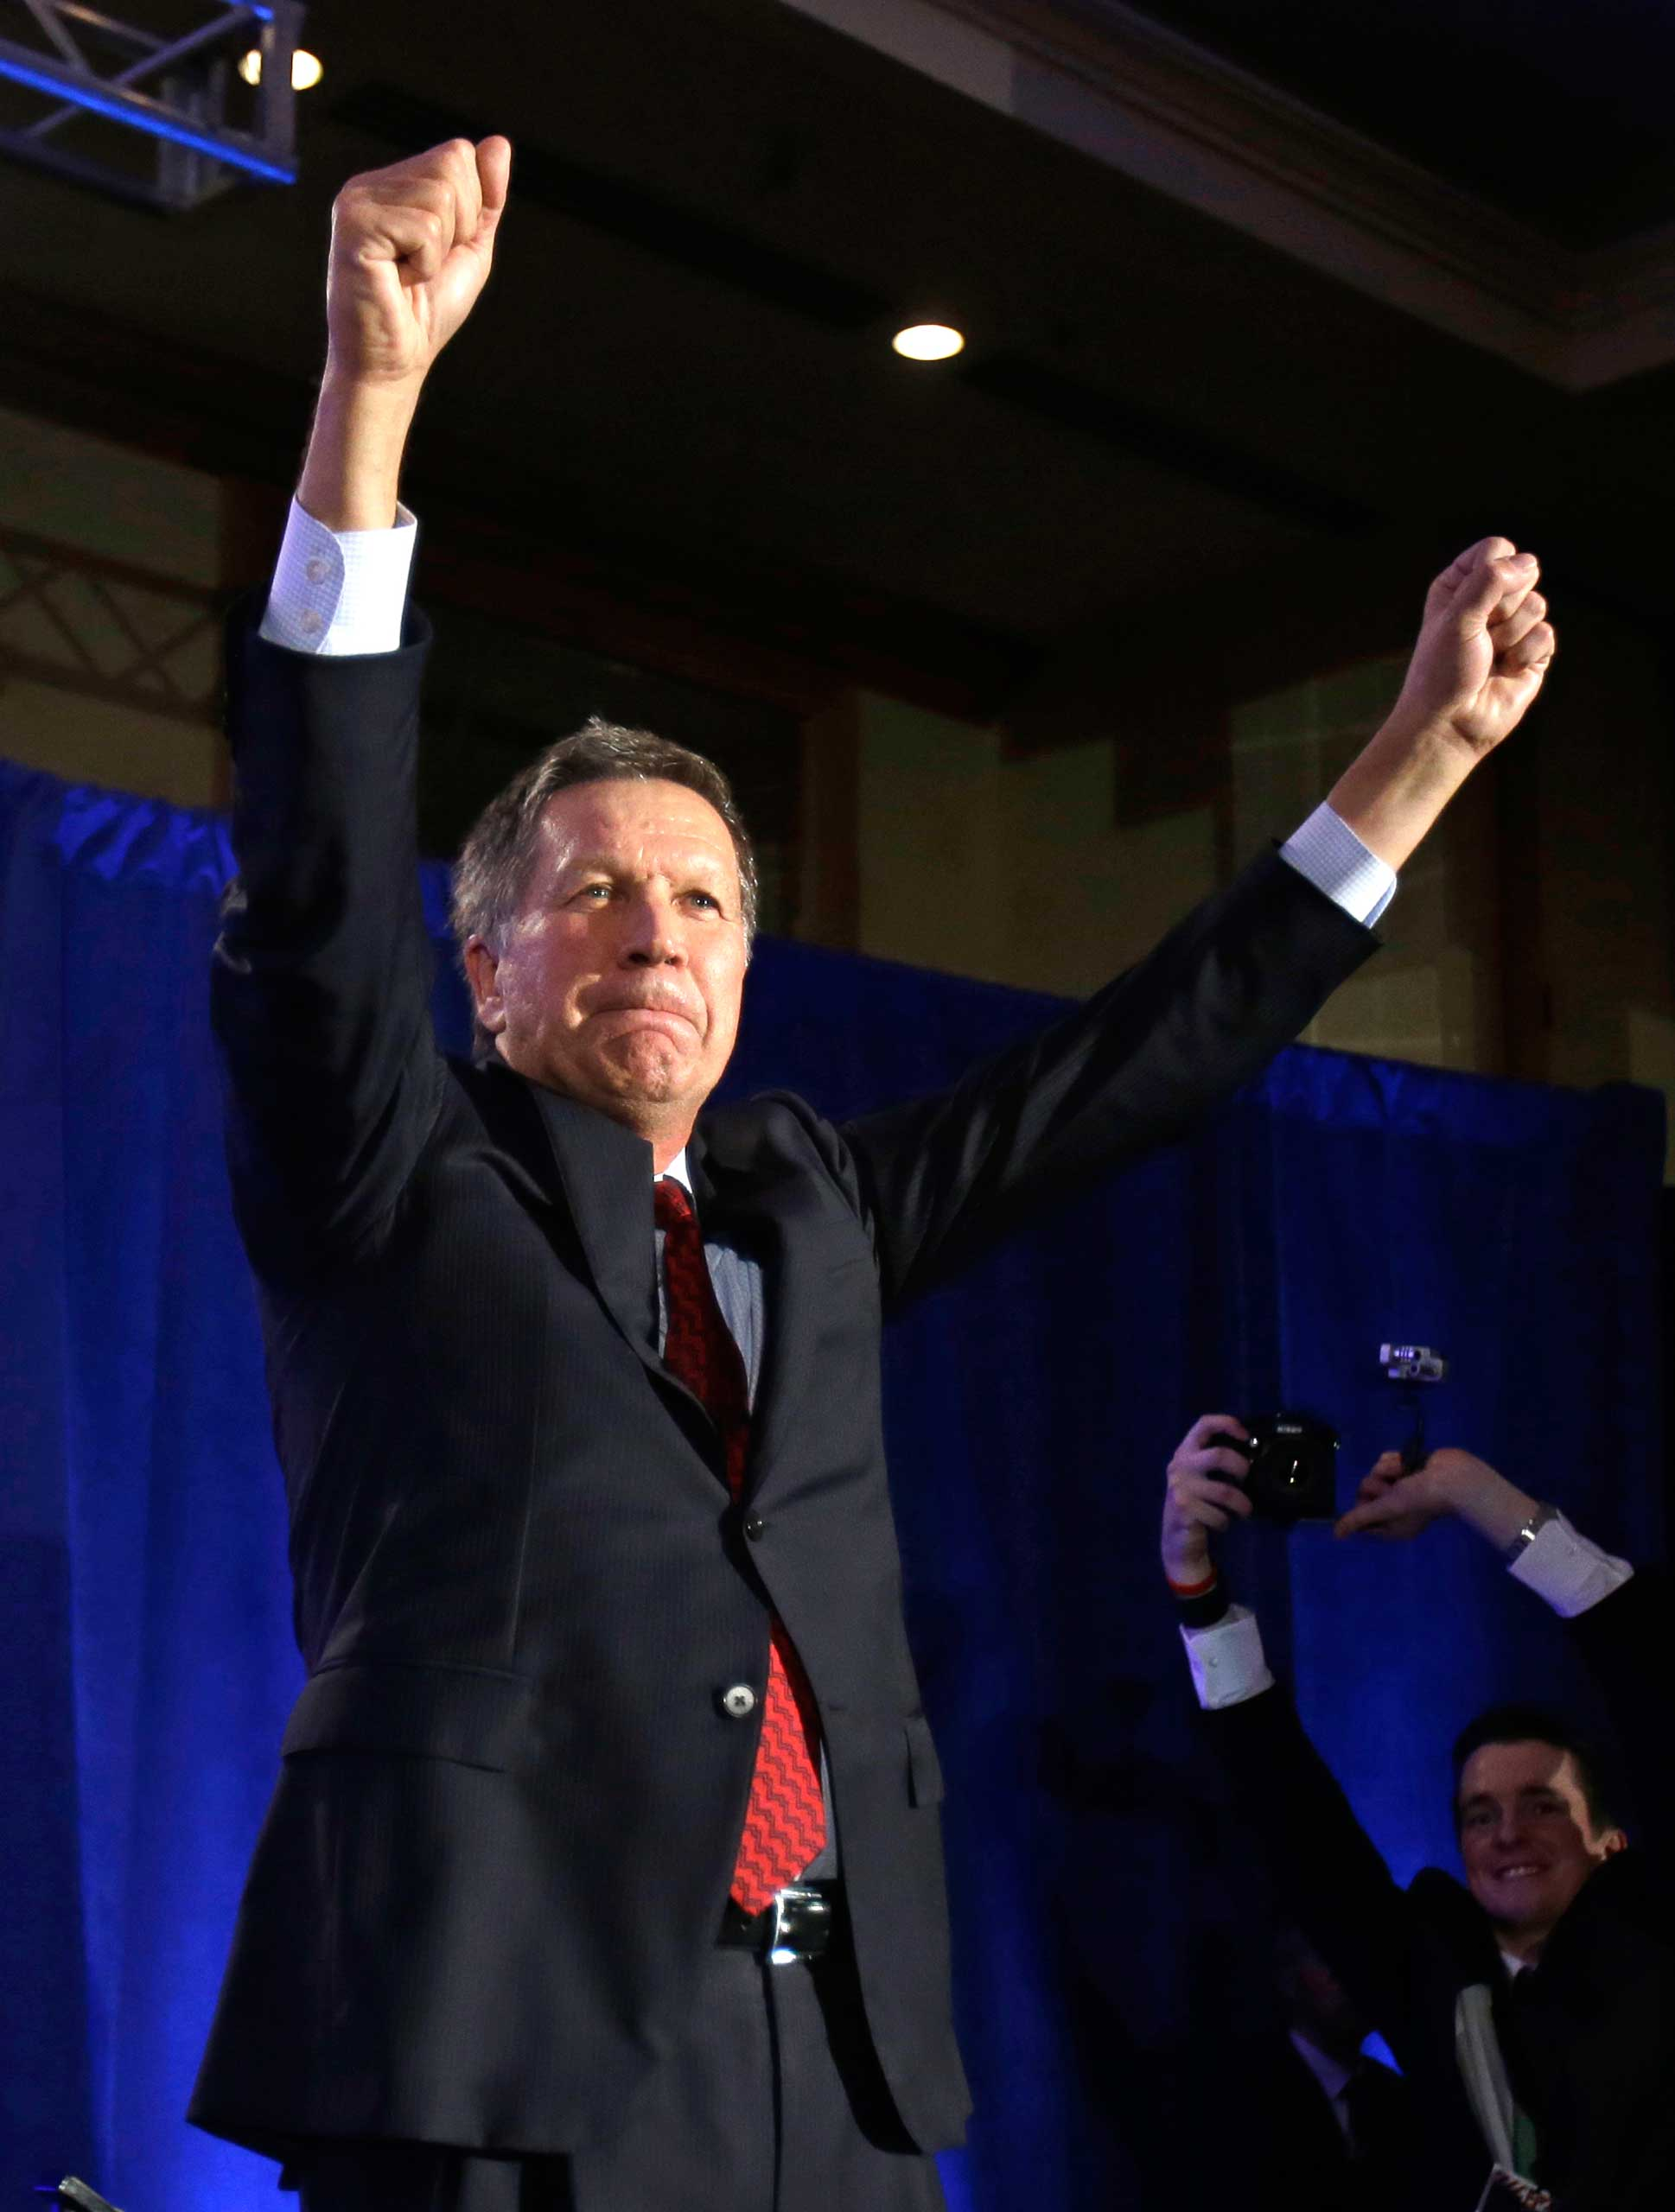 <b>John Kasich</b> Ohio Gov. John Kasich practices his presidential victory pose at the Ohio Republican Party celebration on Tuesday, Nov. 4, 2014, in Columbus, Ohio.